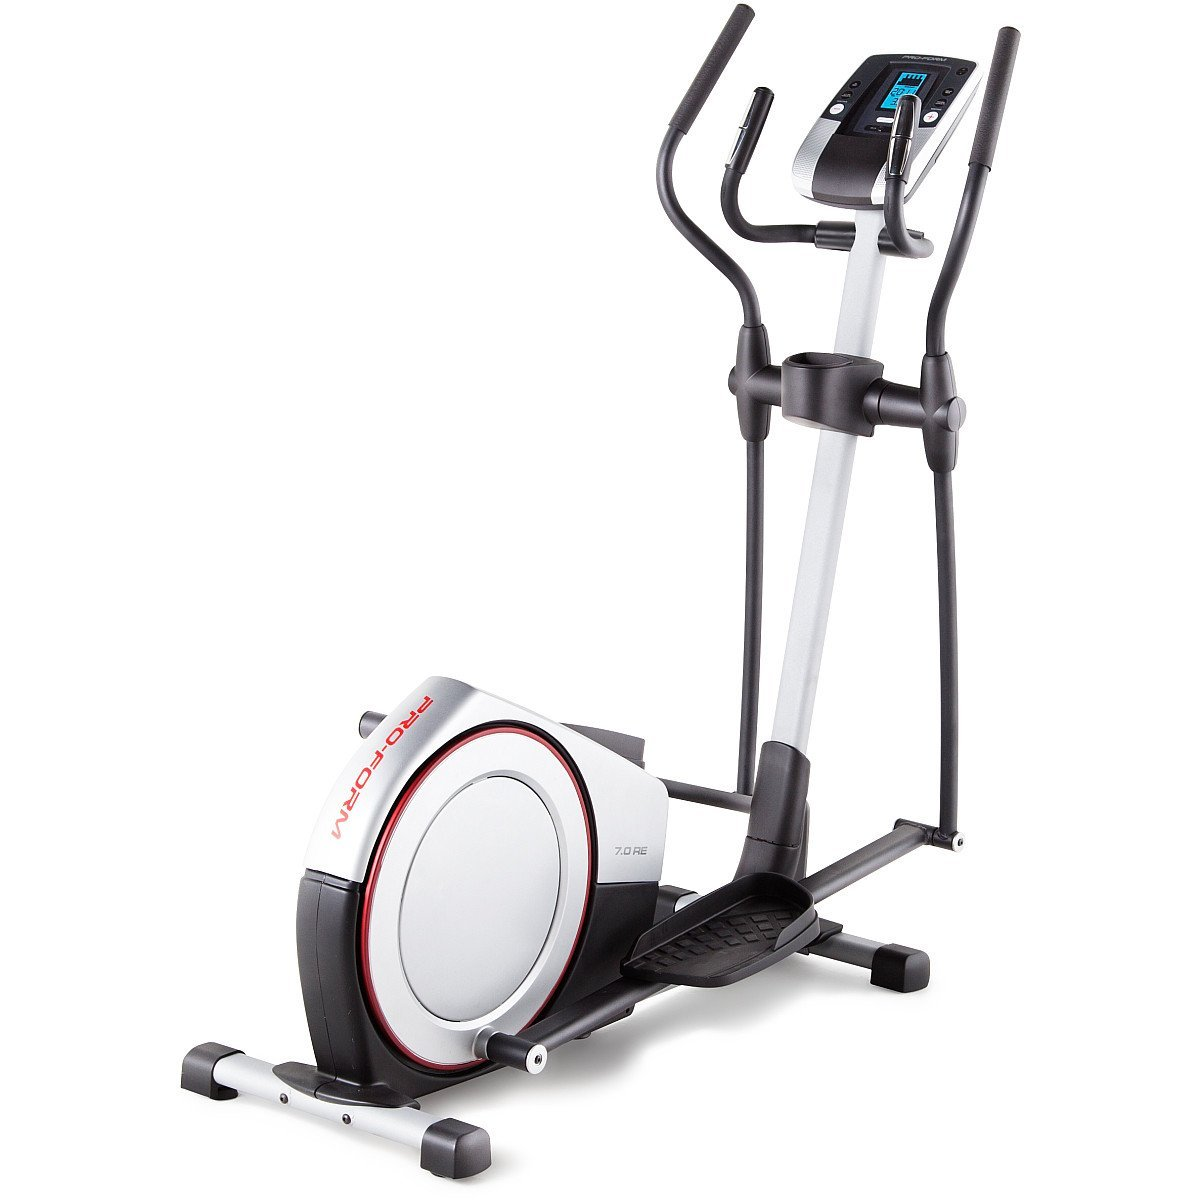 Horizon Elliptical Ce6 0: ProForm 7.0 RE Elliptical Trainer Review